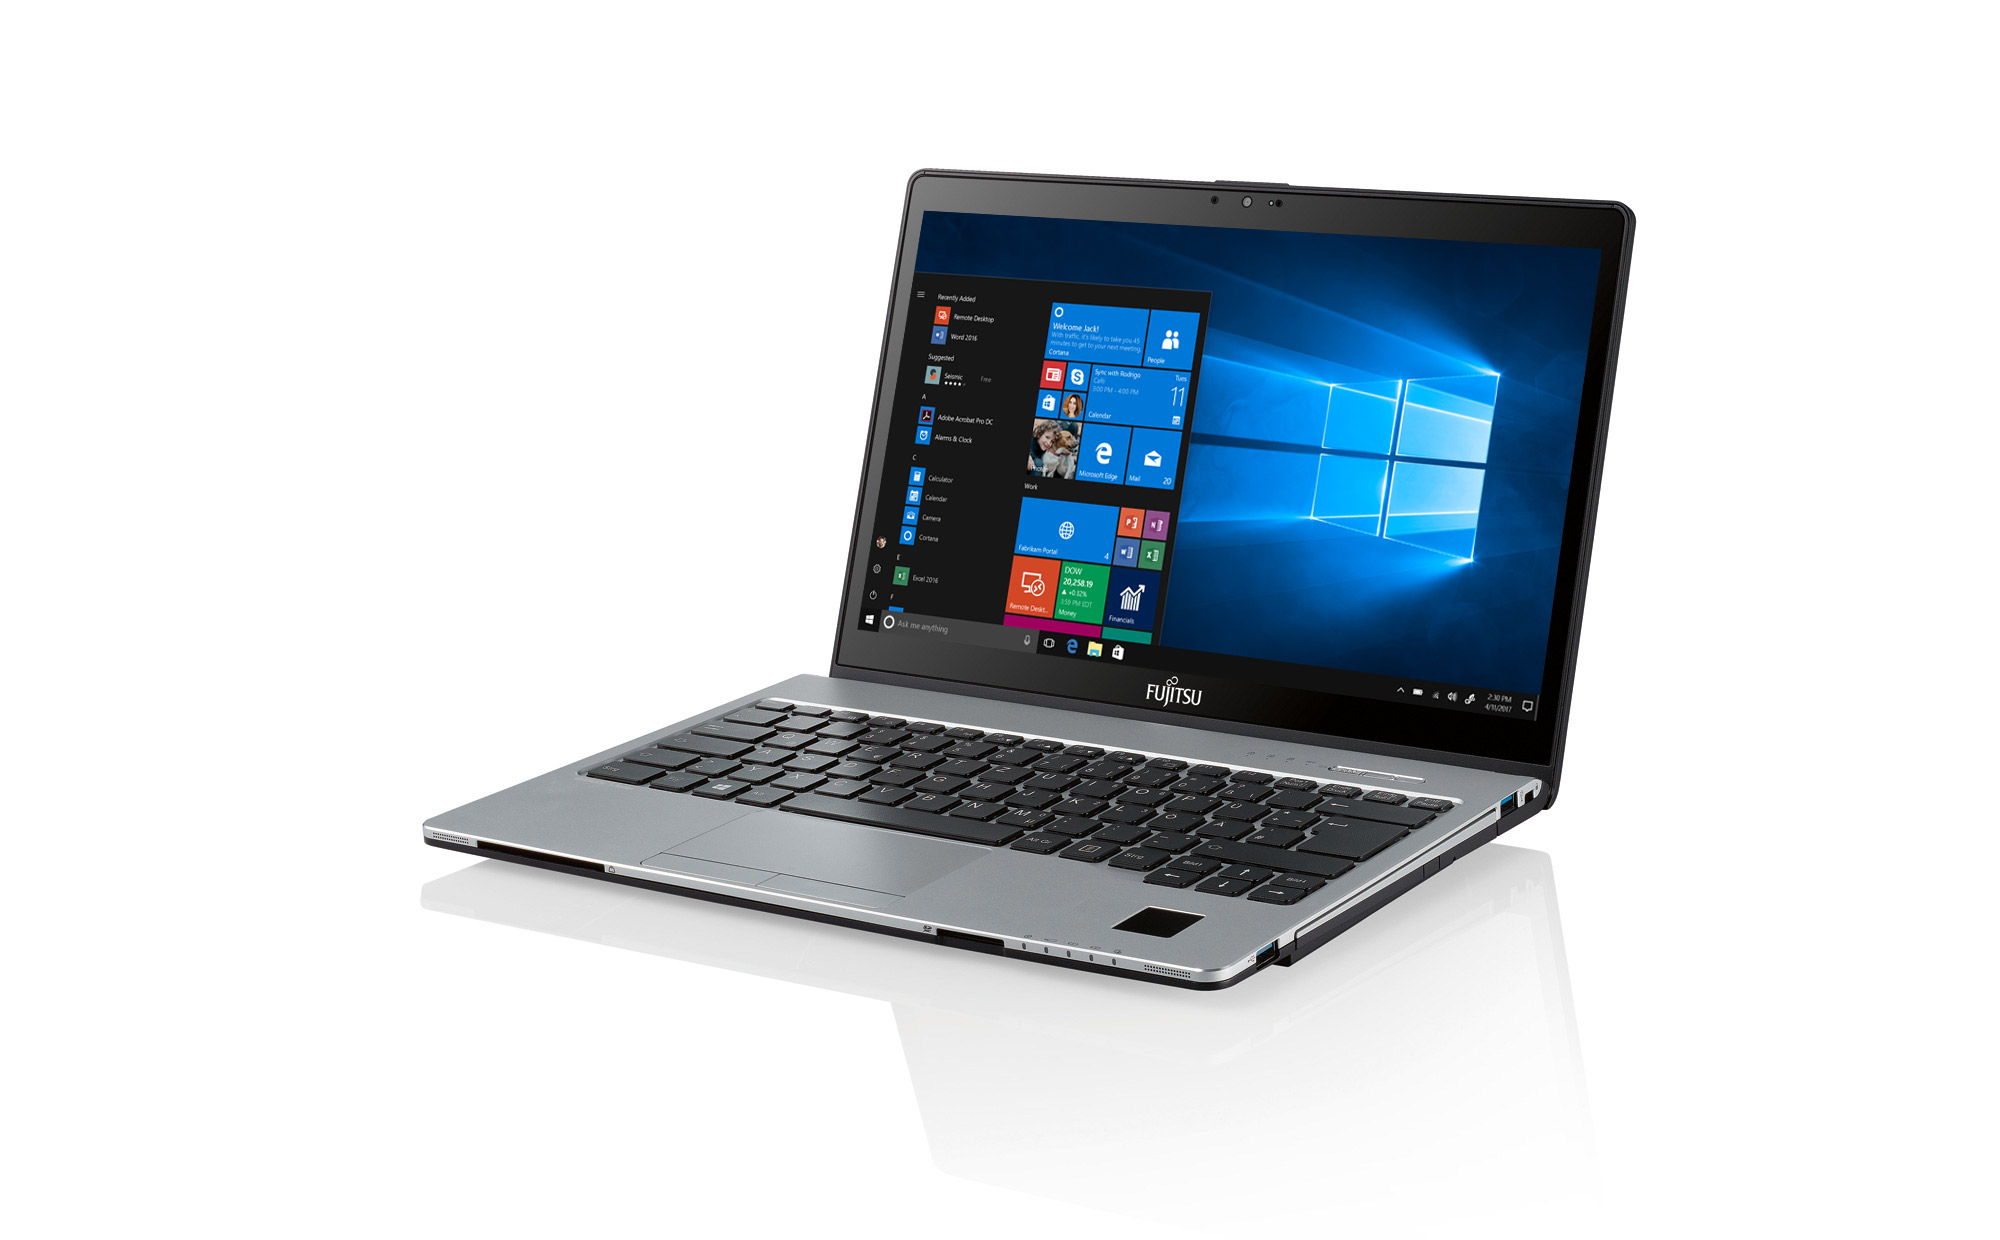 LIFEBOOK_S938__right_side_view__Windows_10